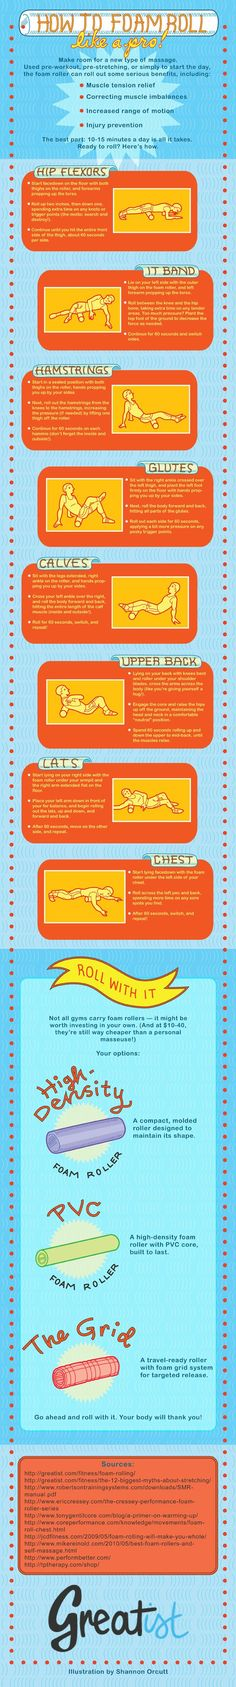 Foam rolling FTW! A great How To infographic - all runners should foam roll! It's that awesome.